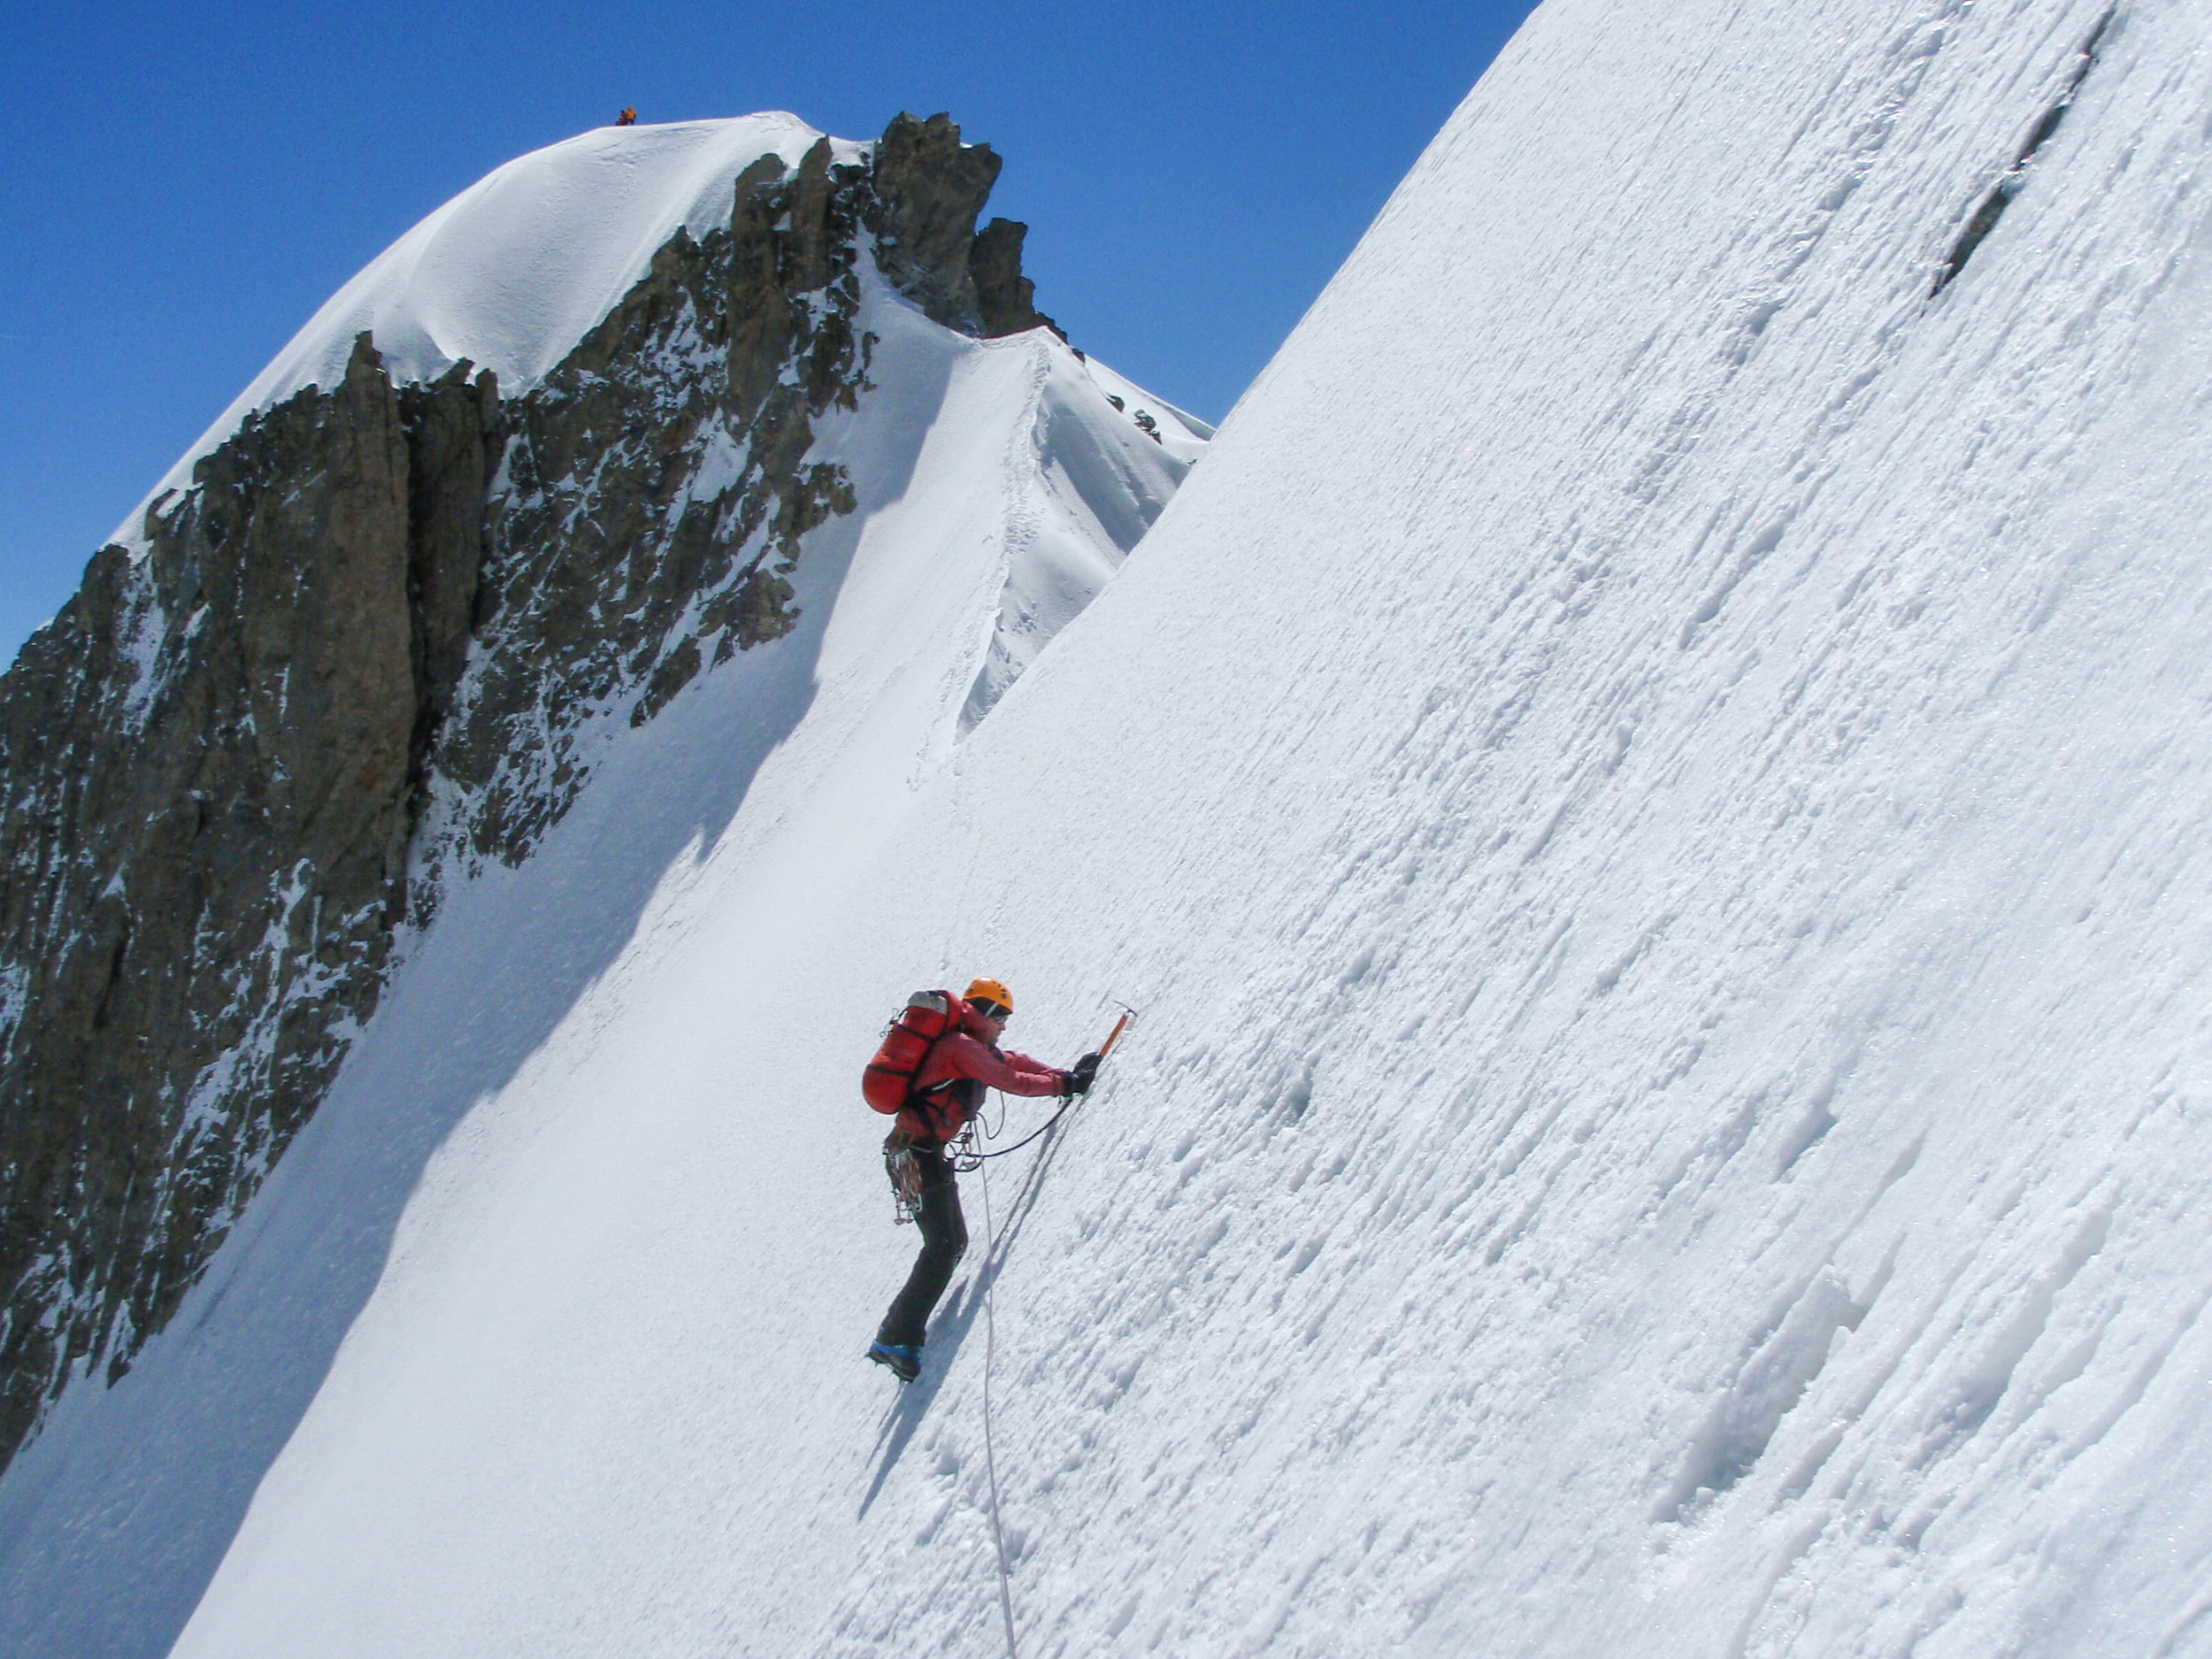 The sensationally exposed traverse of the Aiguille Blanche de Peuterey